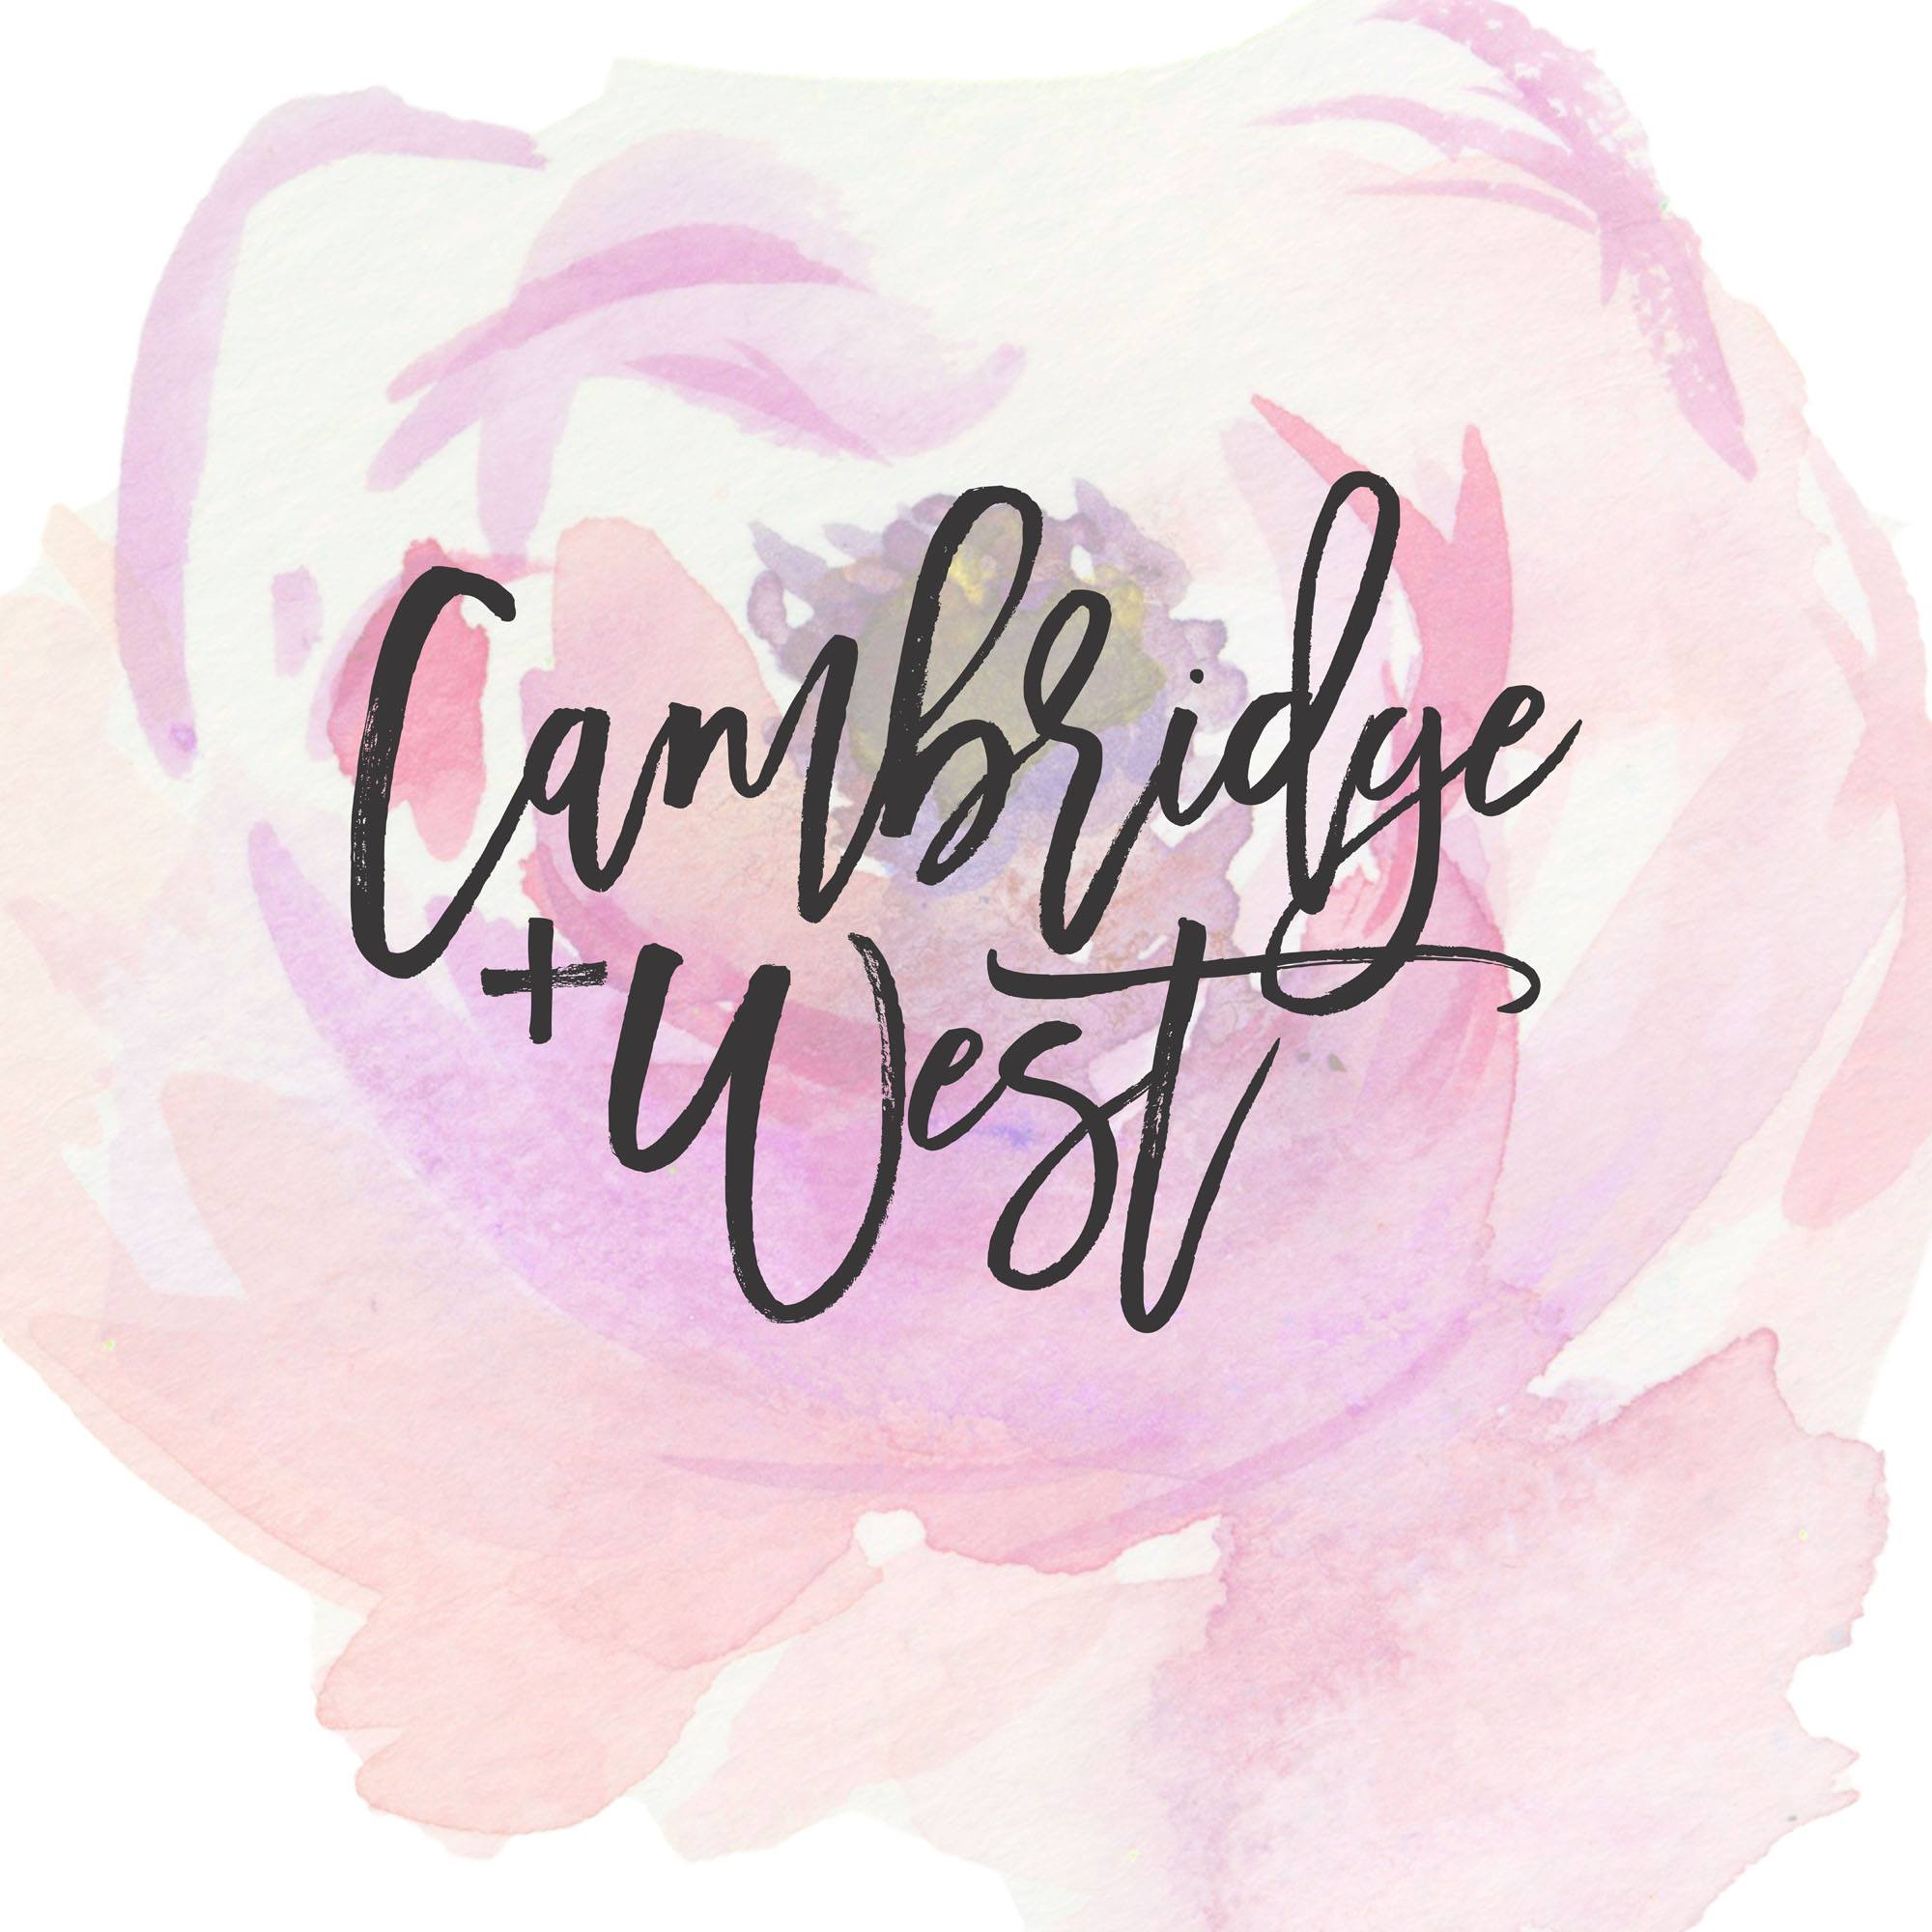 Carli at Cambridge + West will be showing you how to do your own string art for $5 and will also have some other awesome designs for sale! We love the idea of doing a string art 'girls night in' to start a bachelorette party or maybe for the bridal shower! We have our own 'Toledo' string art piece from Carli hanging in our living room!